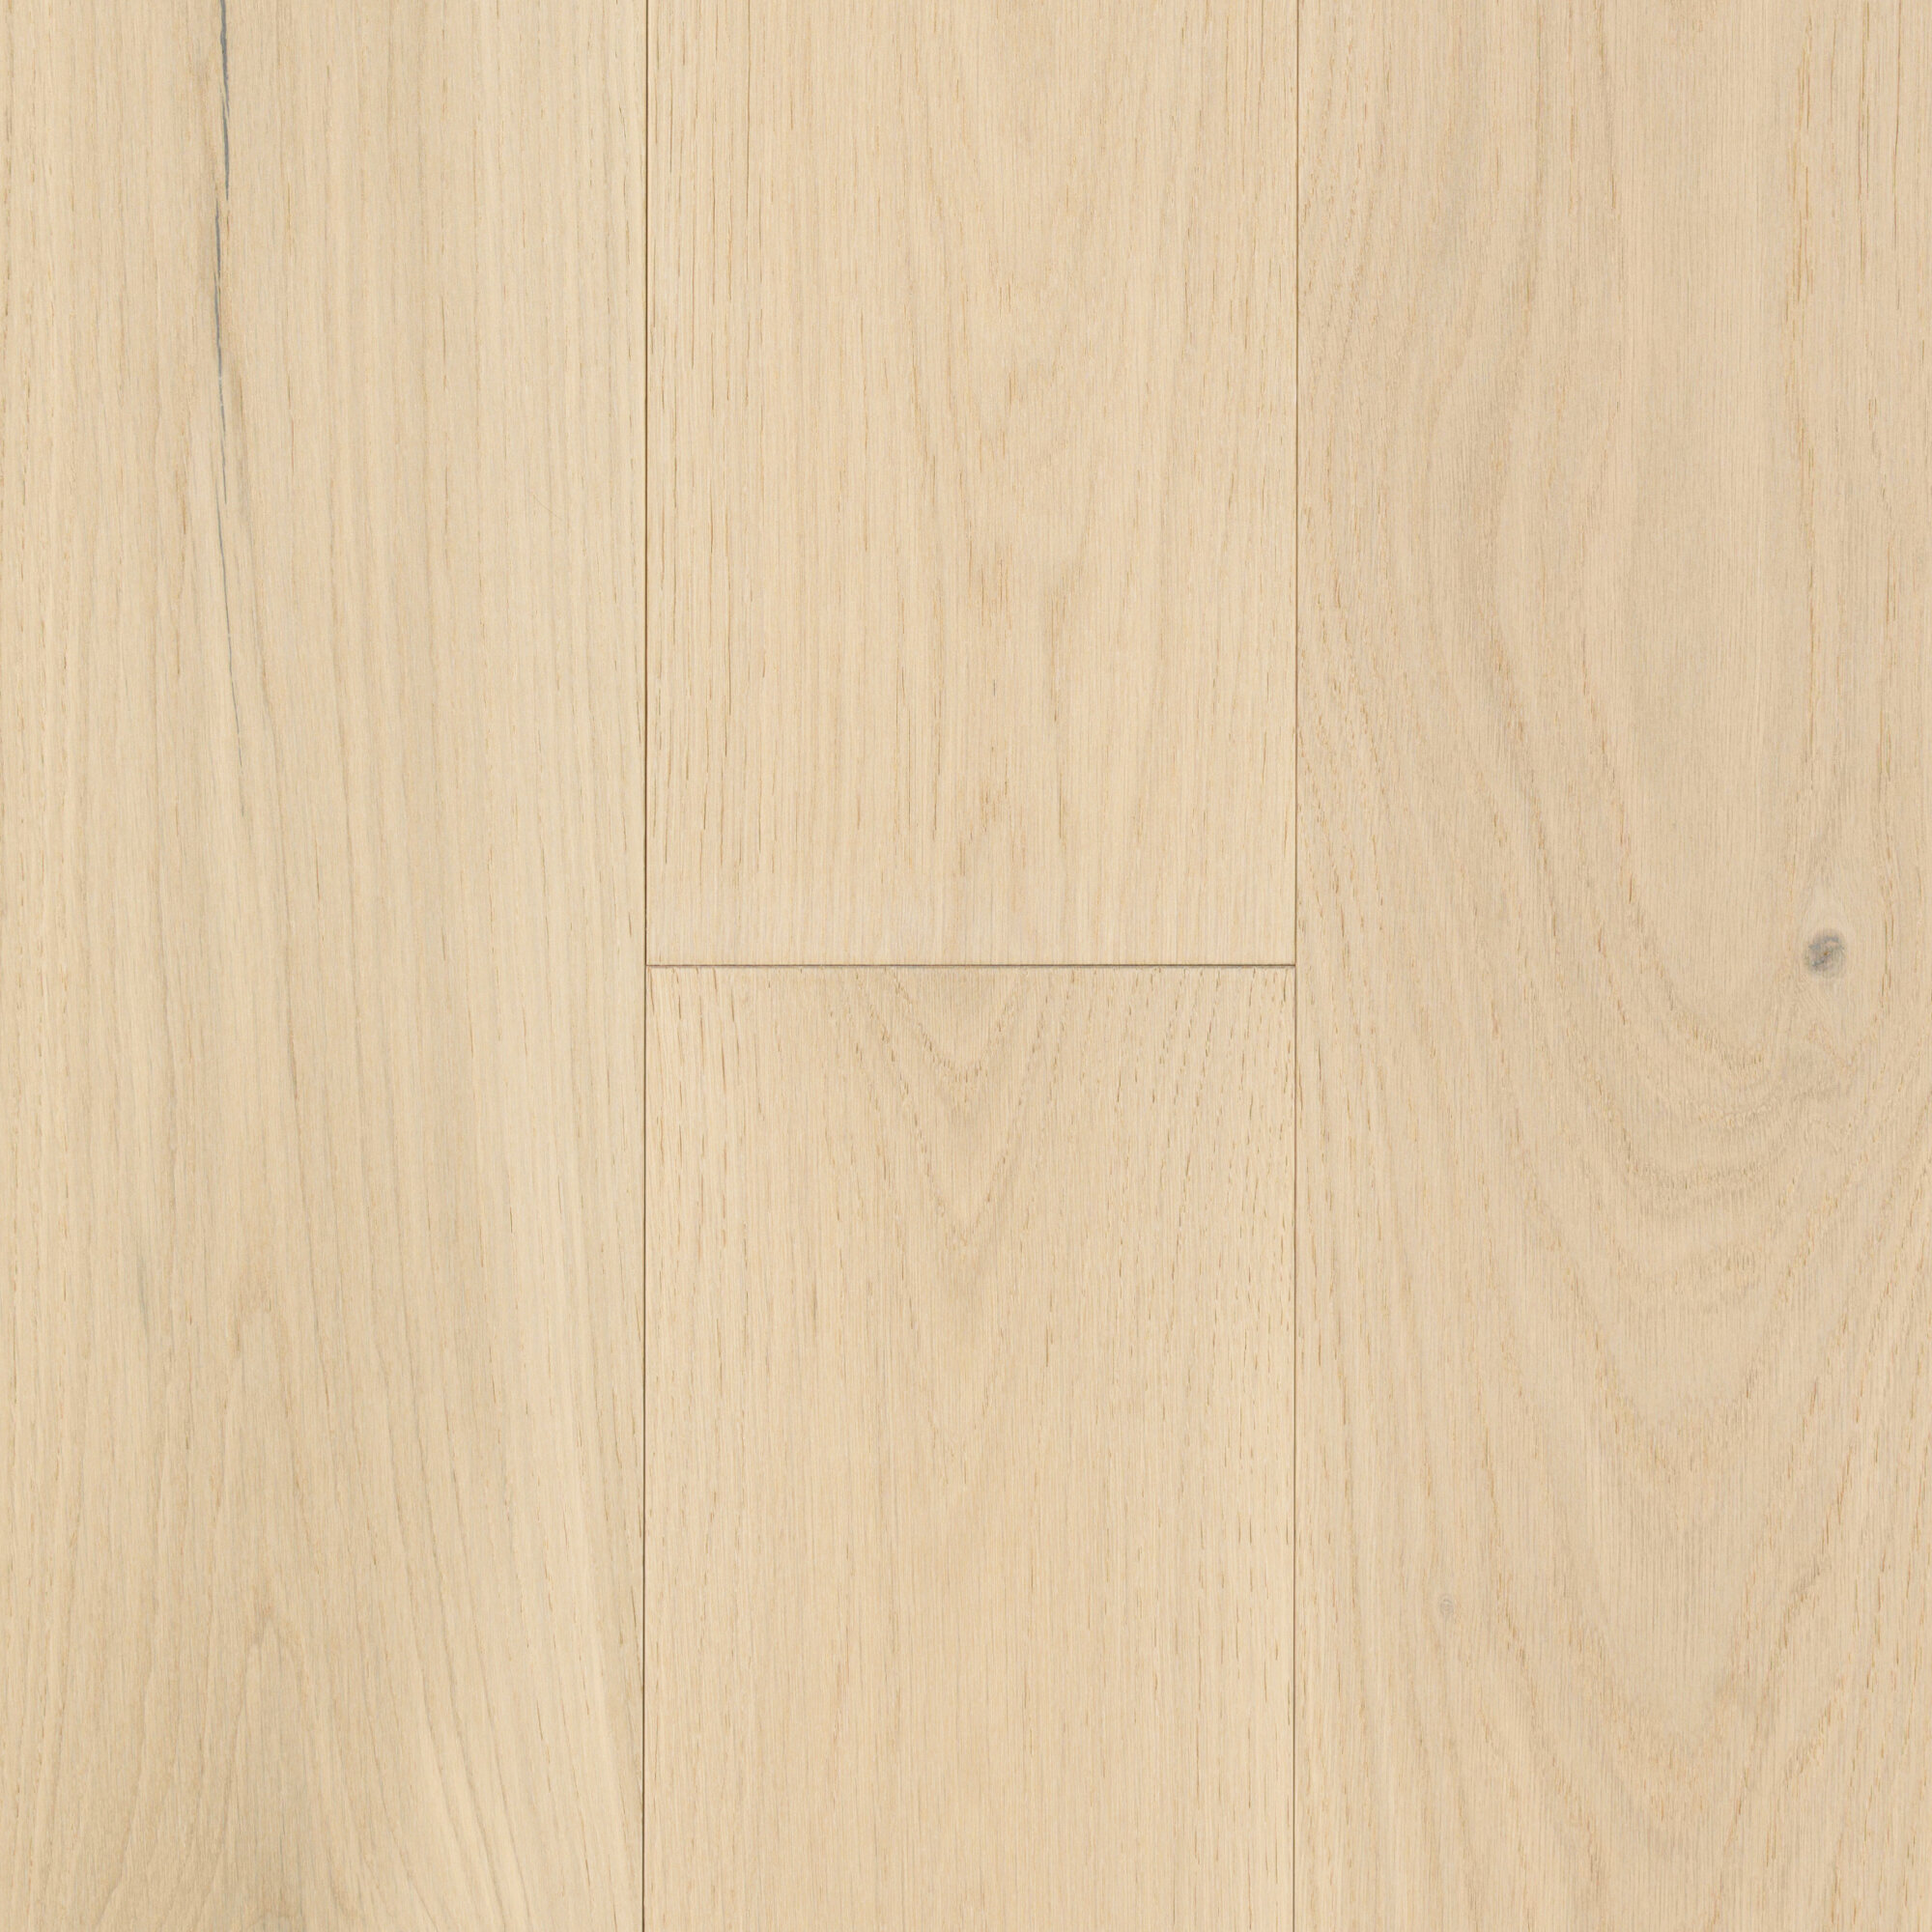 Mohawk Coastal Allure 7 Engineered Oak Hardwood Flooring In Coastline White